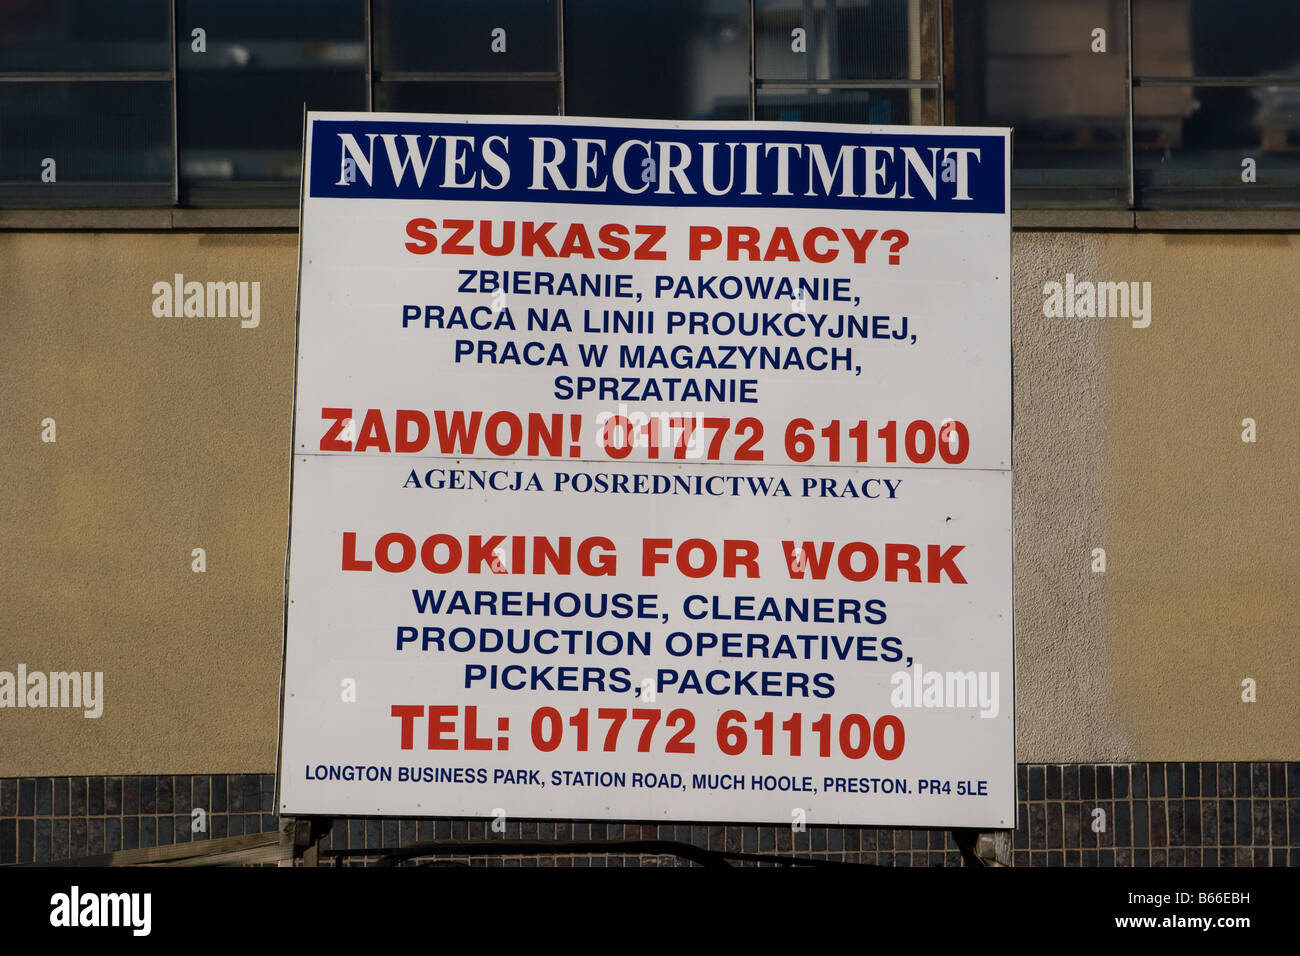 NWES recruiting Eu Polish employment trailer advertising for workers, Southport, Merseyside,uk Stock Photo